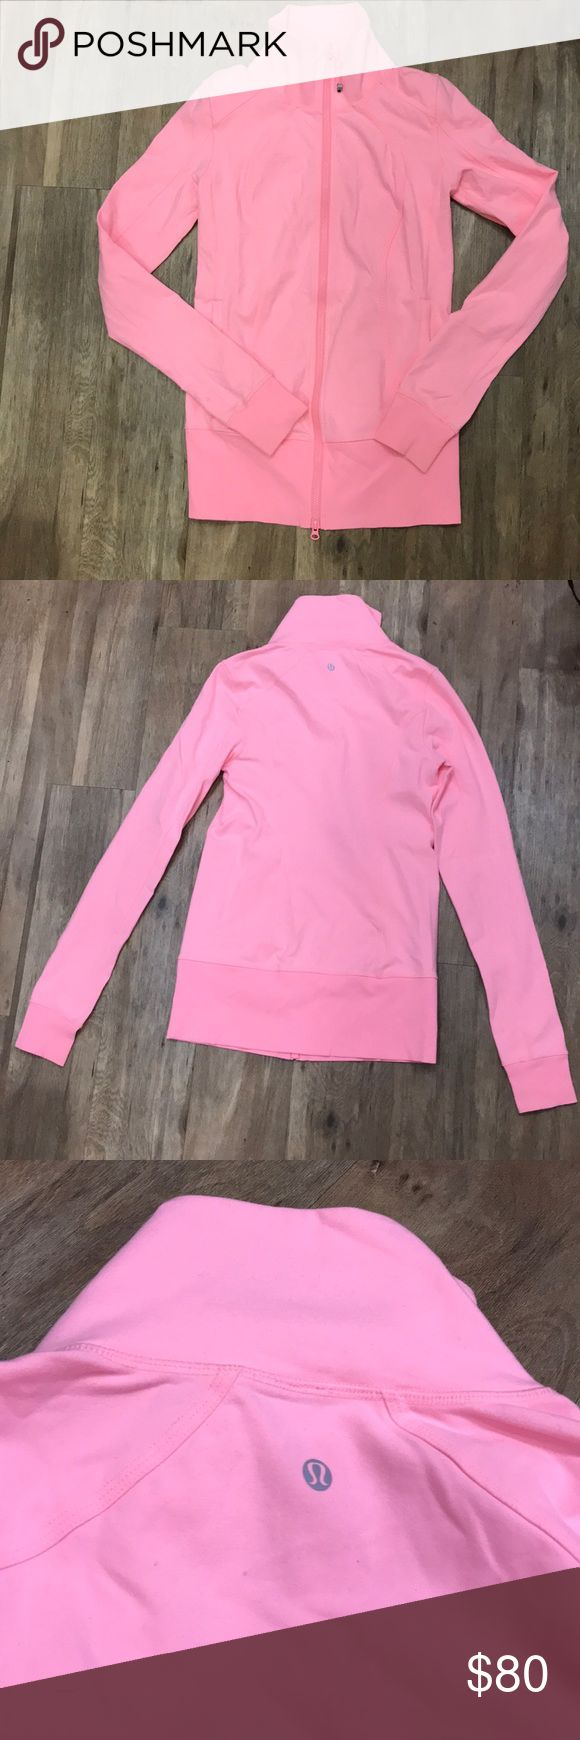 Lululemon Coral Pink High Neck Running Jacket High-neck, no-hood Lululemon running jacket. Similar to the Define jacket, but less form-fitting. Size 6 (Small). Bright coral pink color. Fit is a little longer than hips. Includes thumb holes, Lululemon logo zipper pull, and reflective logo on back of neck. Amazing condition and very well-cared for. lululemon athletica Tops Sweatshirts & Hoodies